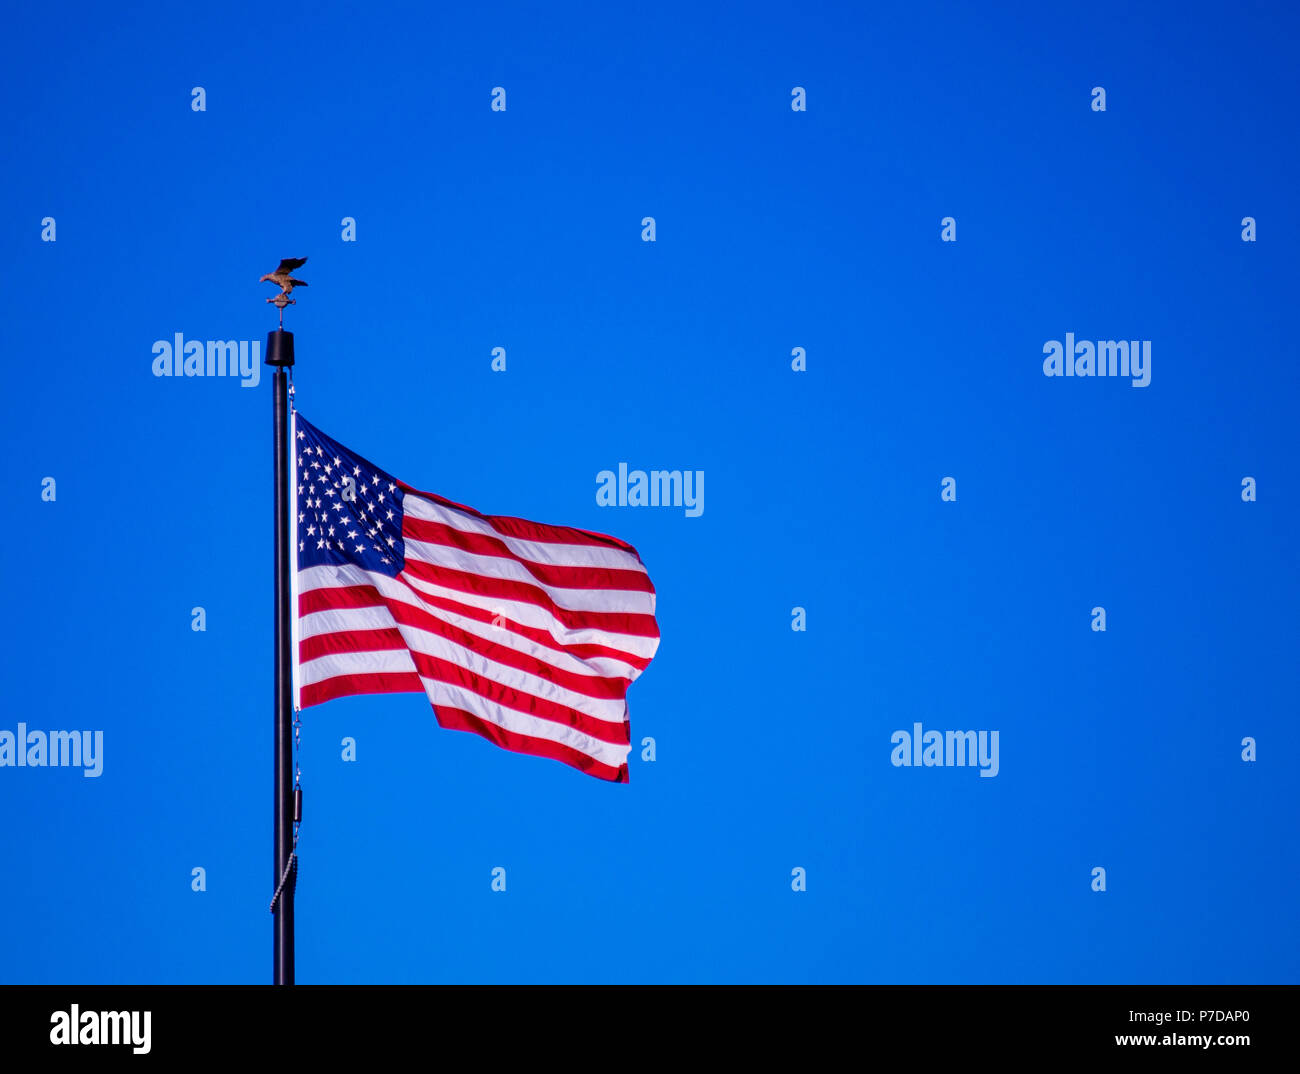 US Flag blowing in the wind - Stock Image